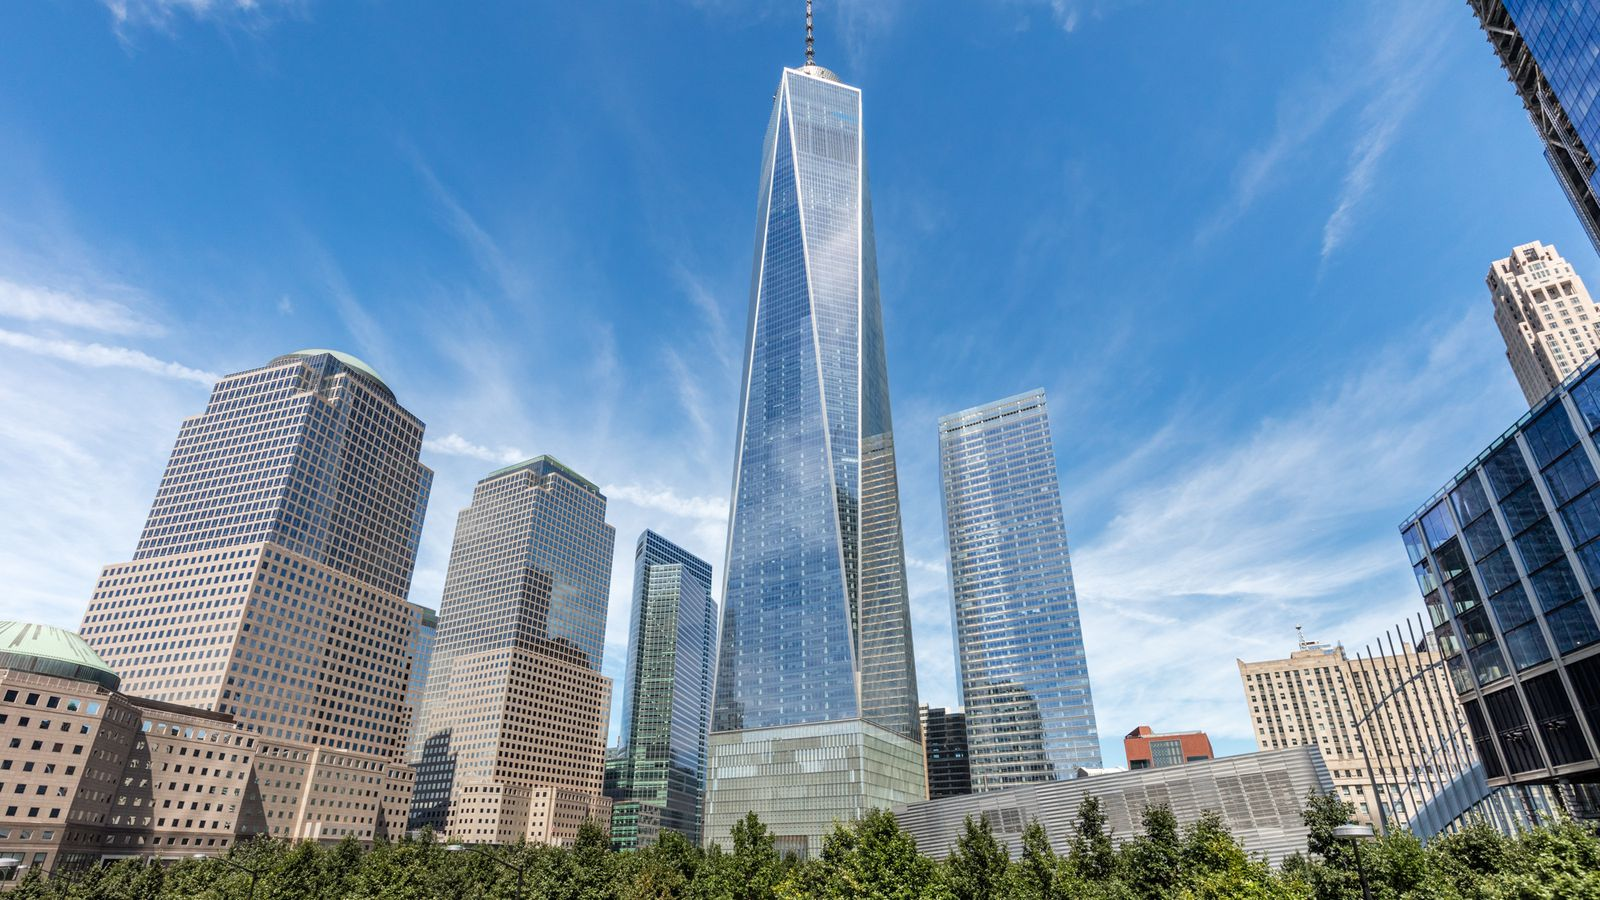 Pictures from the world trade center Oculus: The new World Trade Center Transportation Hub